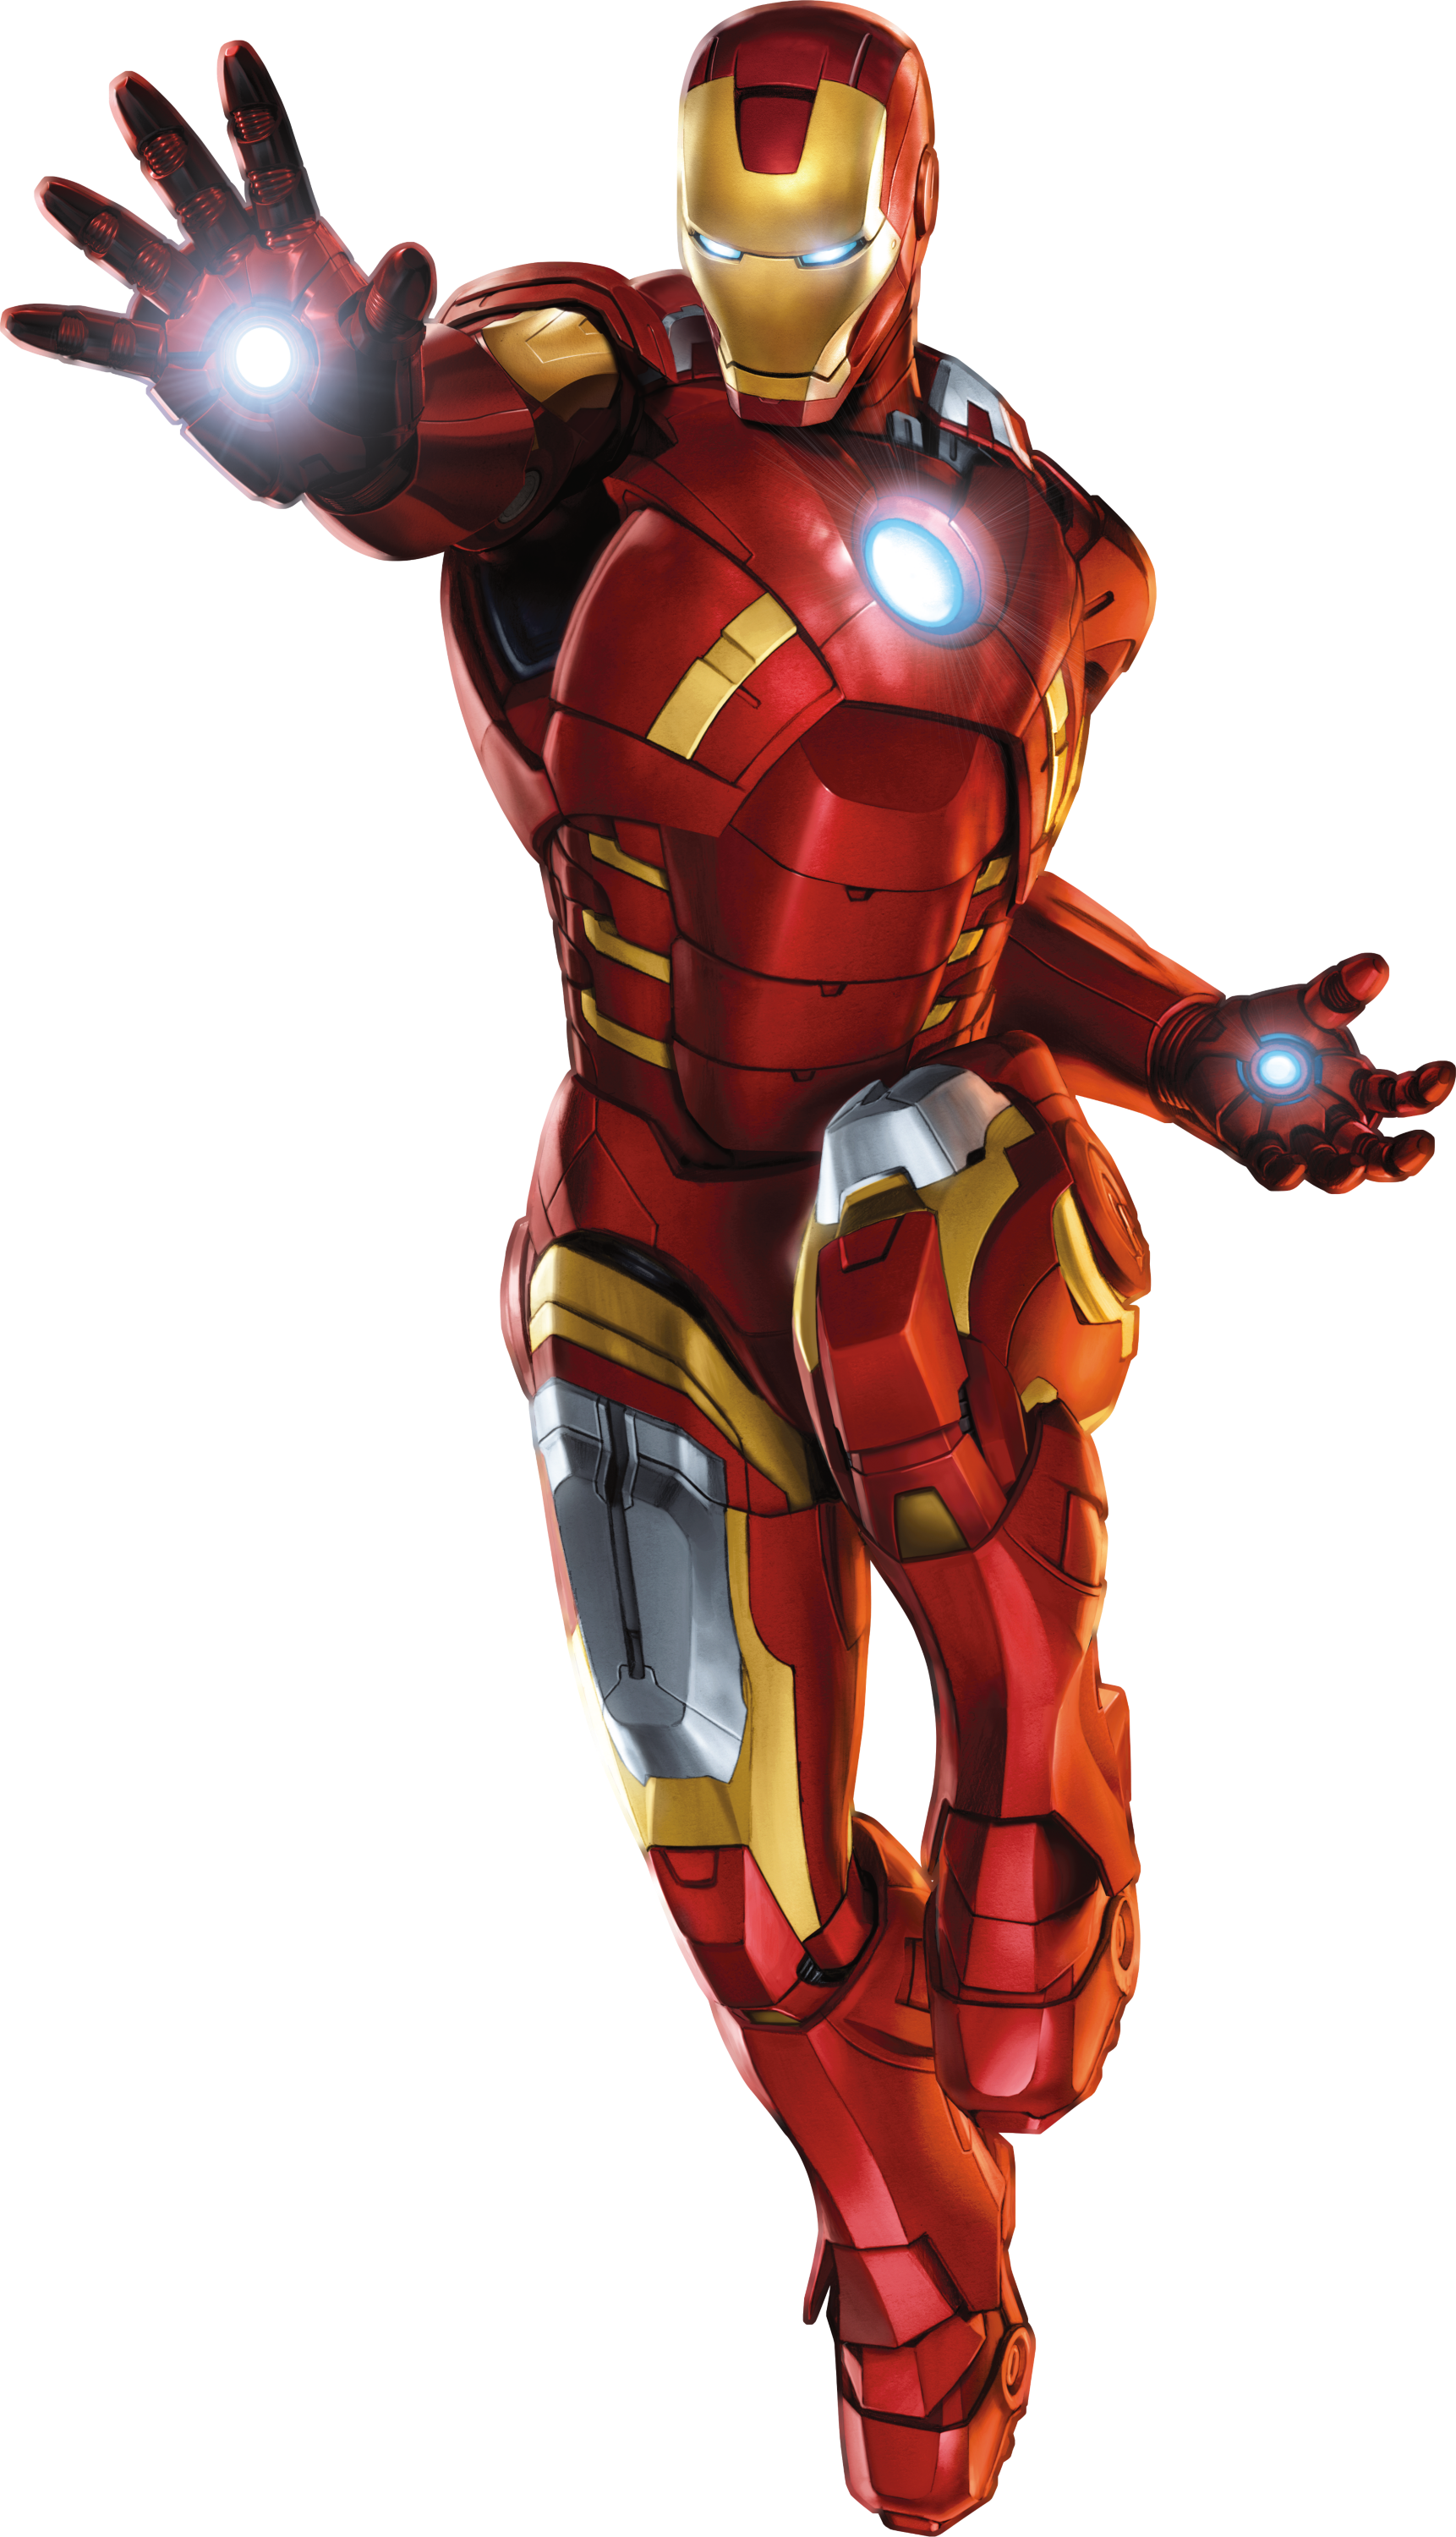 Ironman comic png. Iron man death battle